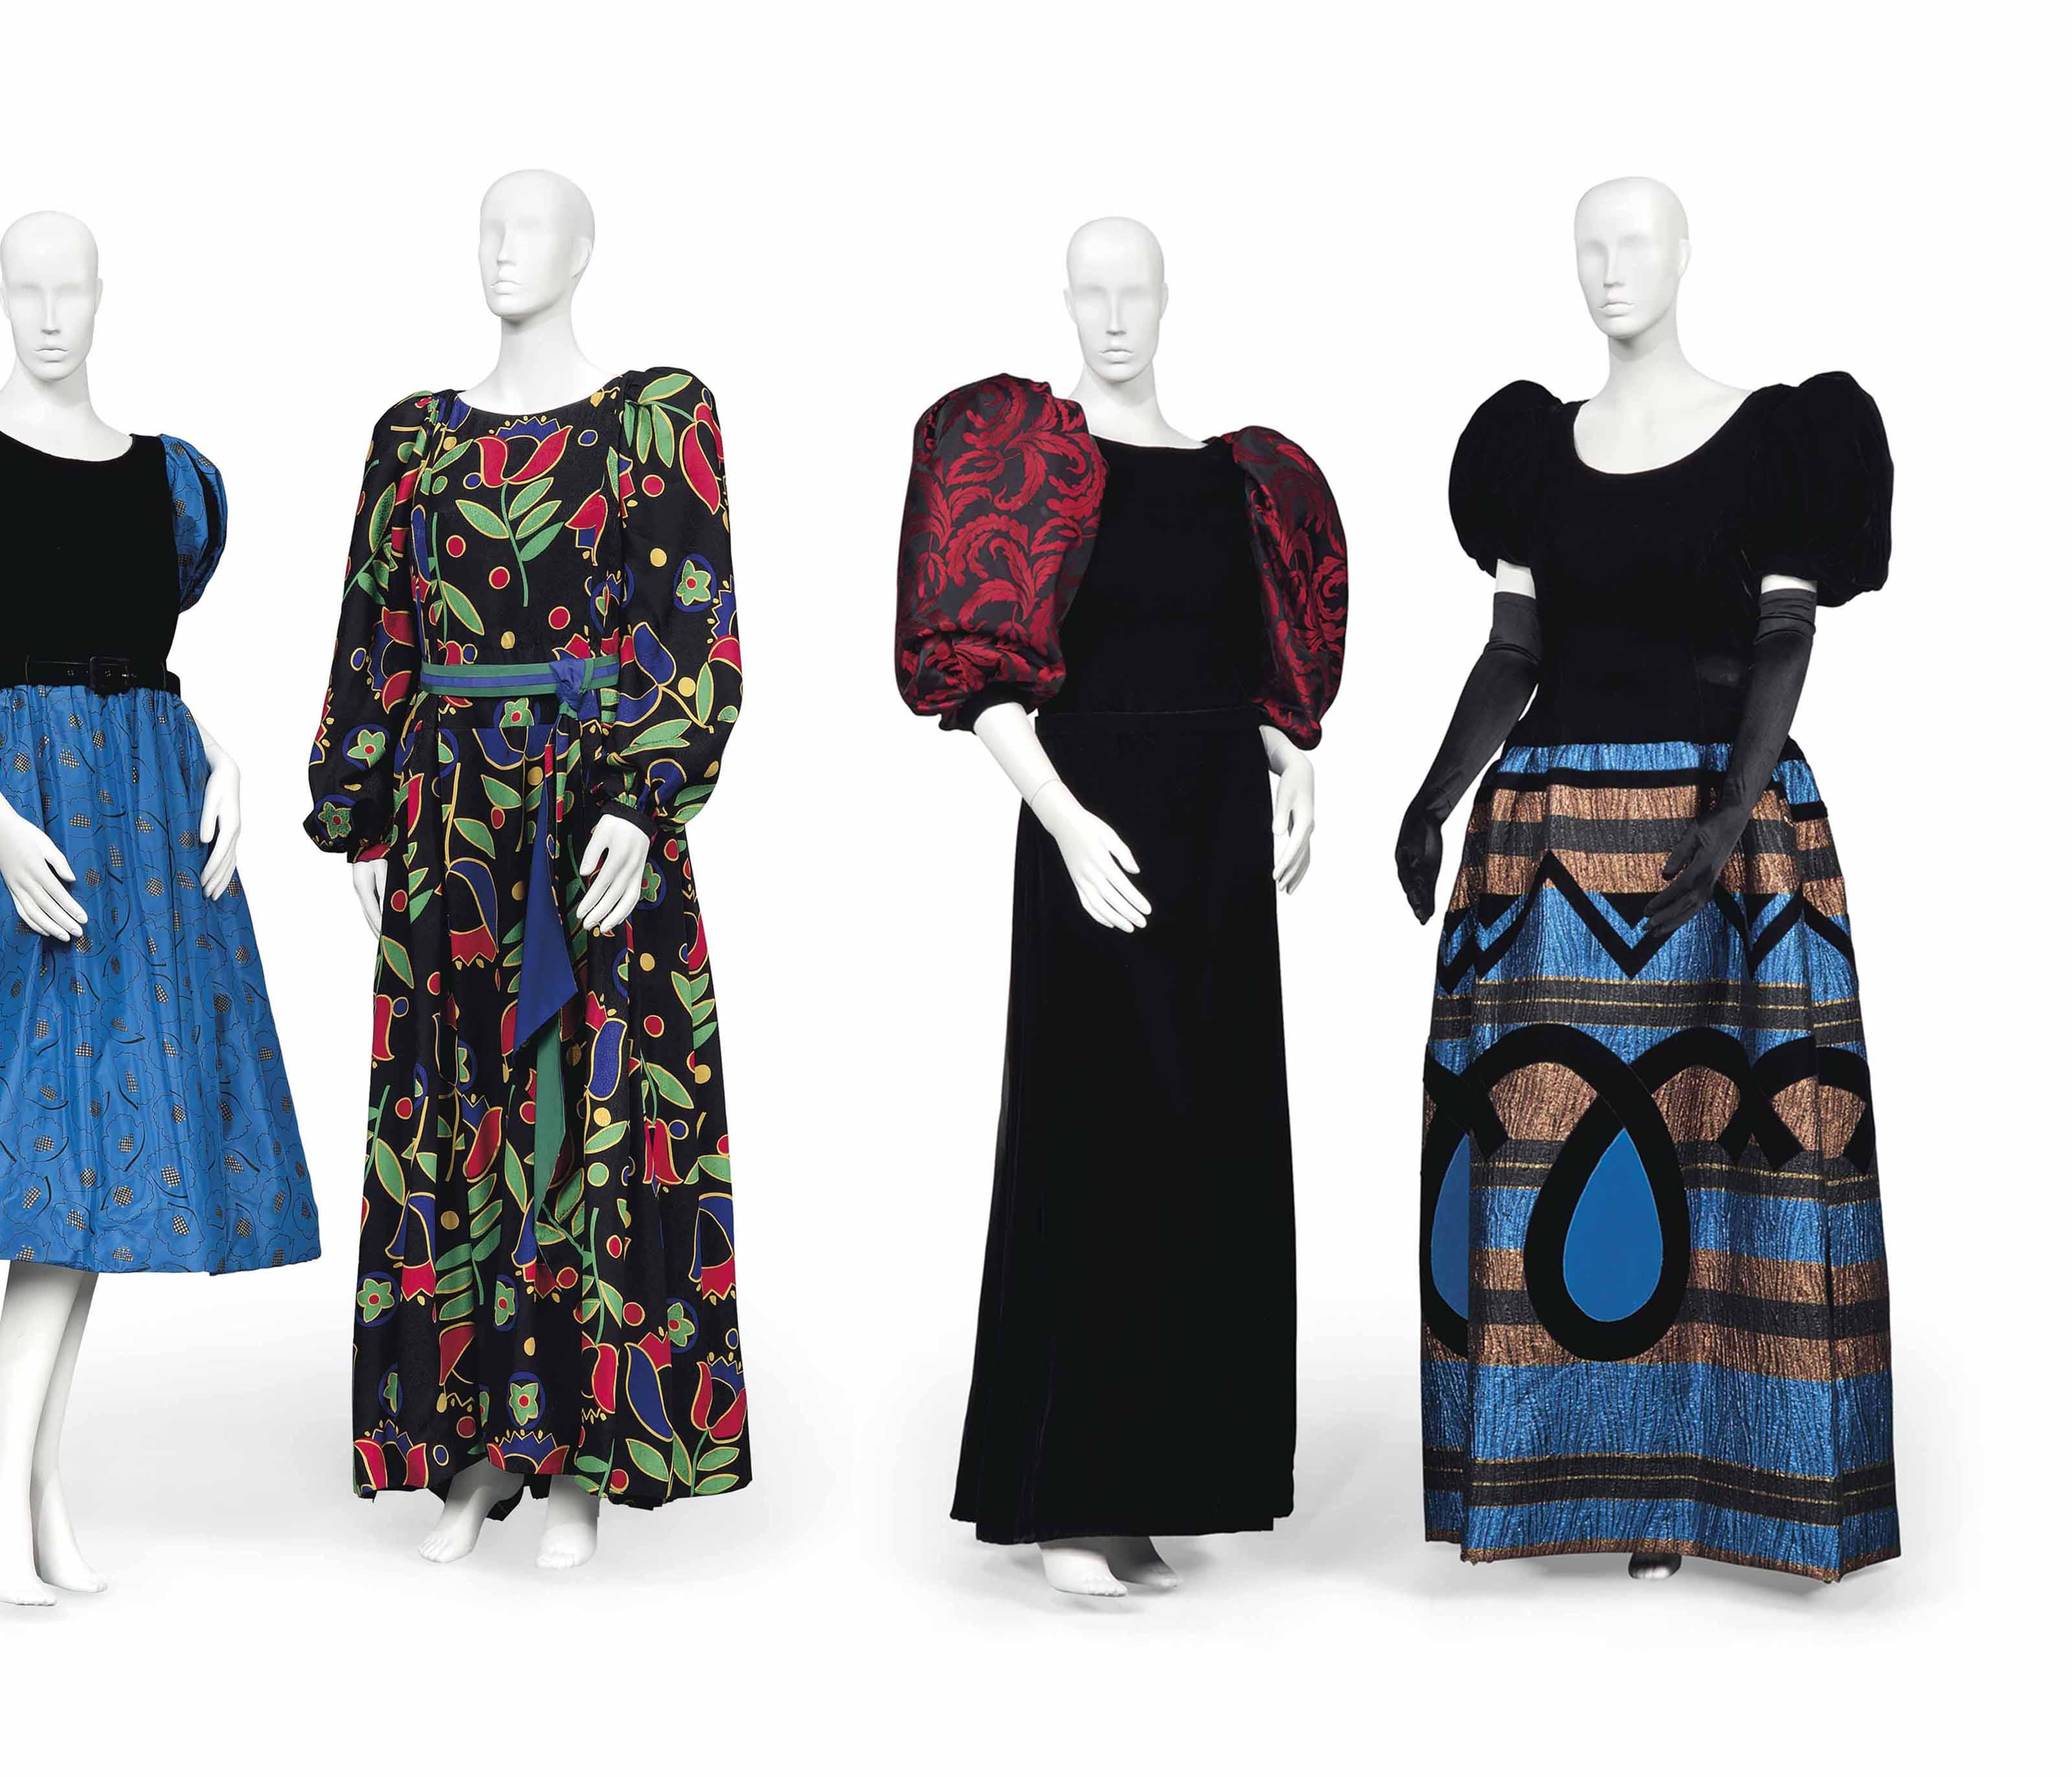 c51249146585 TWO EVENING GOWNS BY PIERRE BALMAIN AND HARDY AMIES, ...